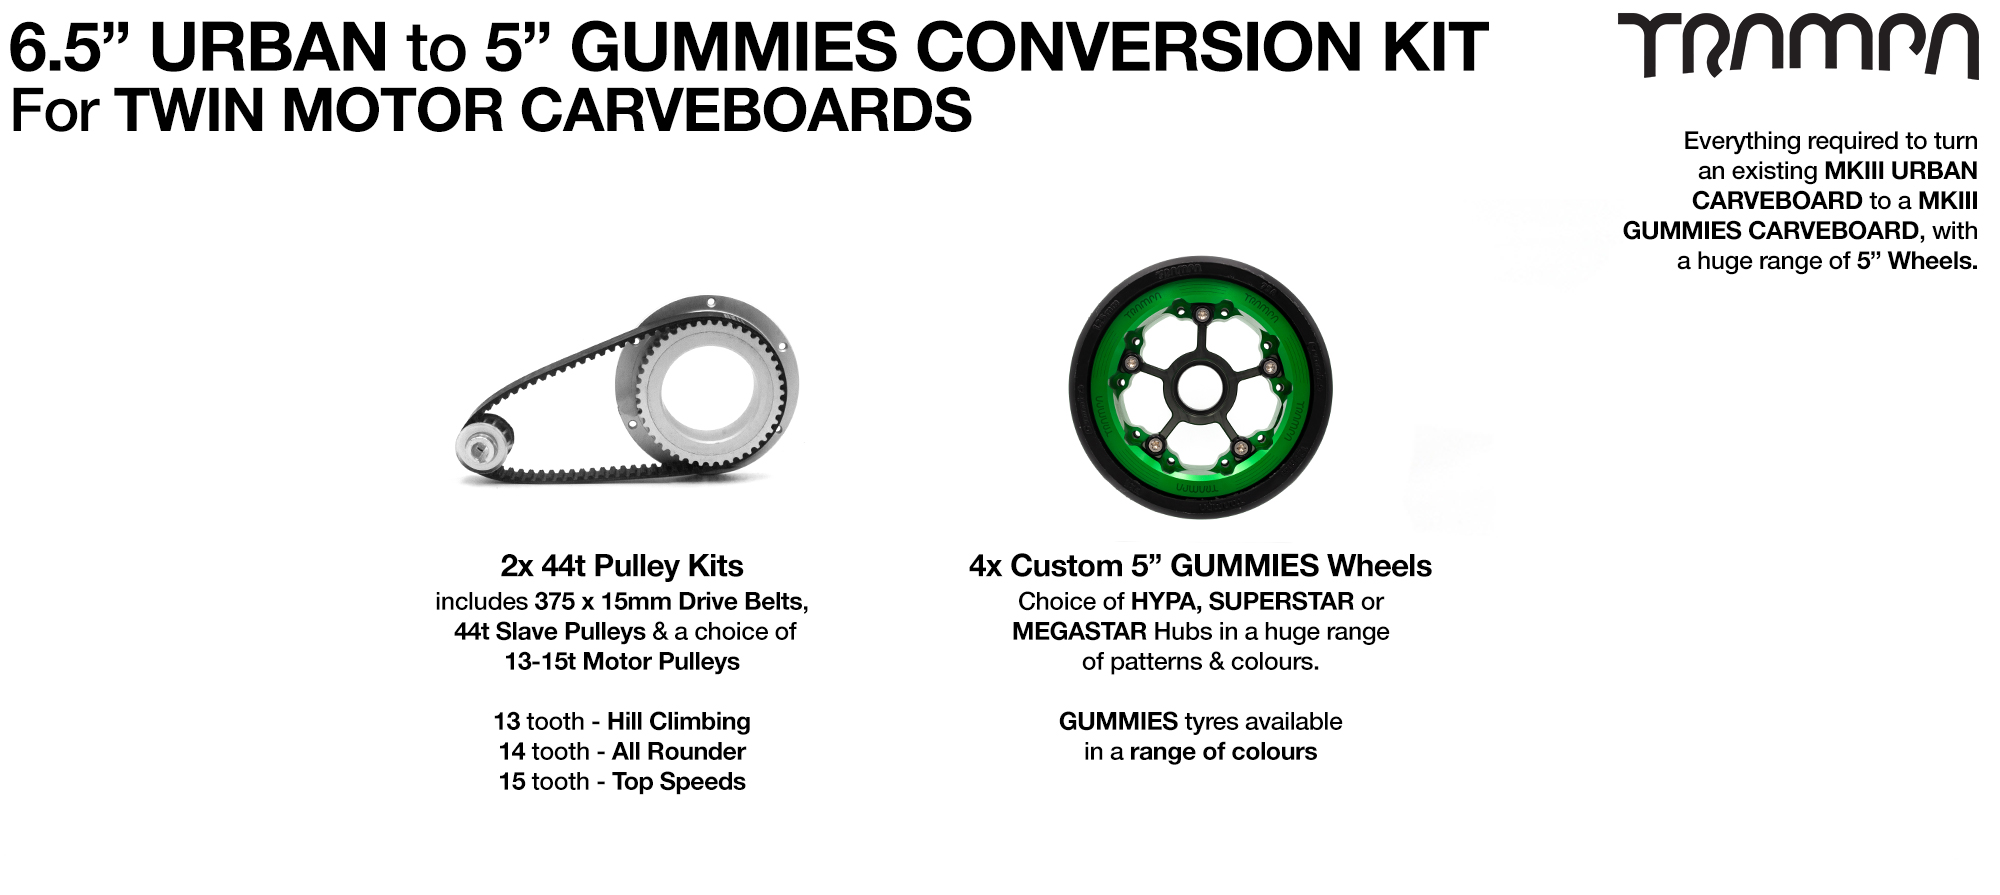 Urban to Gummies Carveboard complete Conversion kit with 4x 7 Inch Custom HYPA wheels forTWIN Motor Mounts